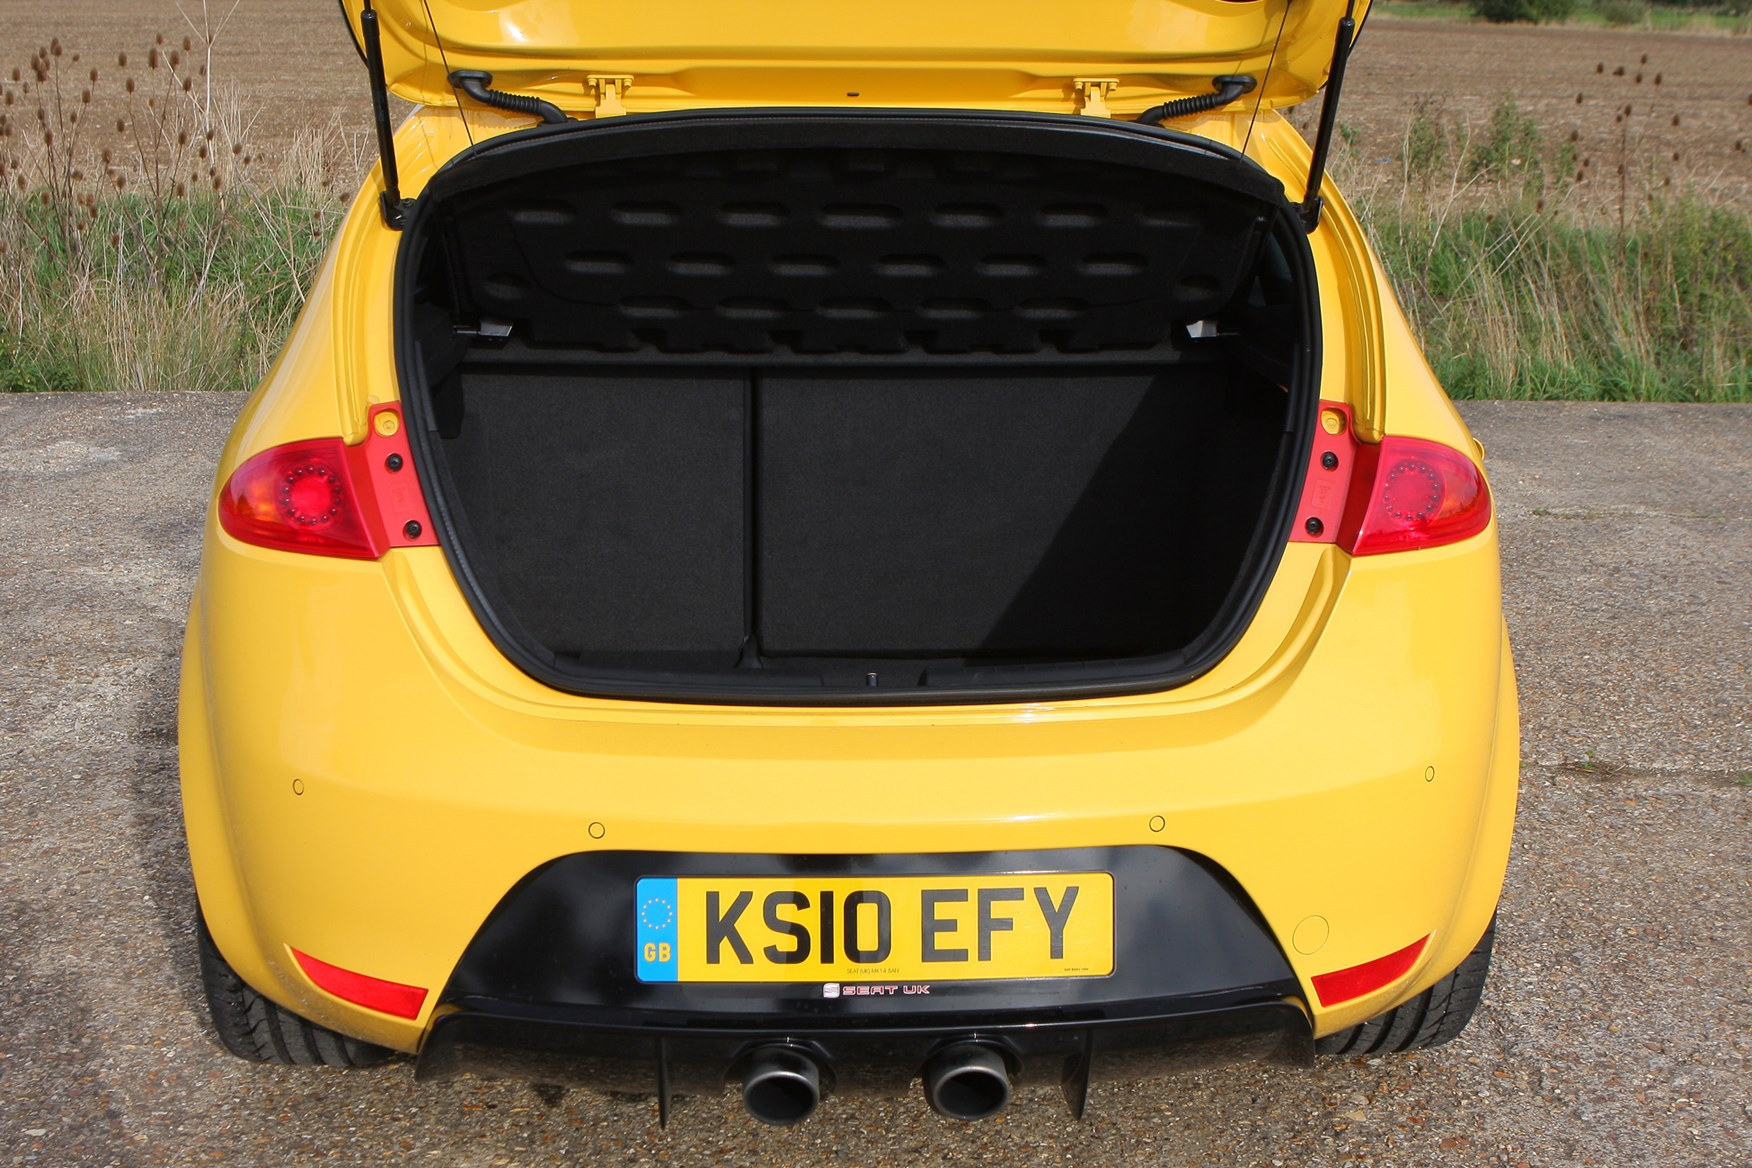 Used SEAT Leon Cupra R (2010 - 2012) Practicality | Parkers